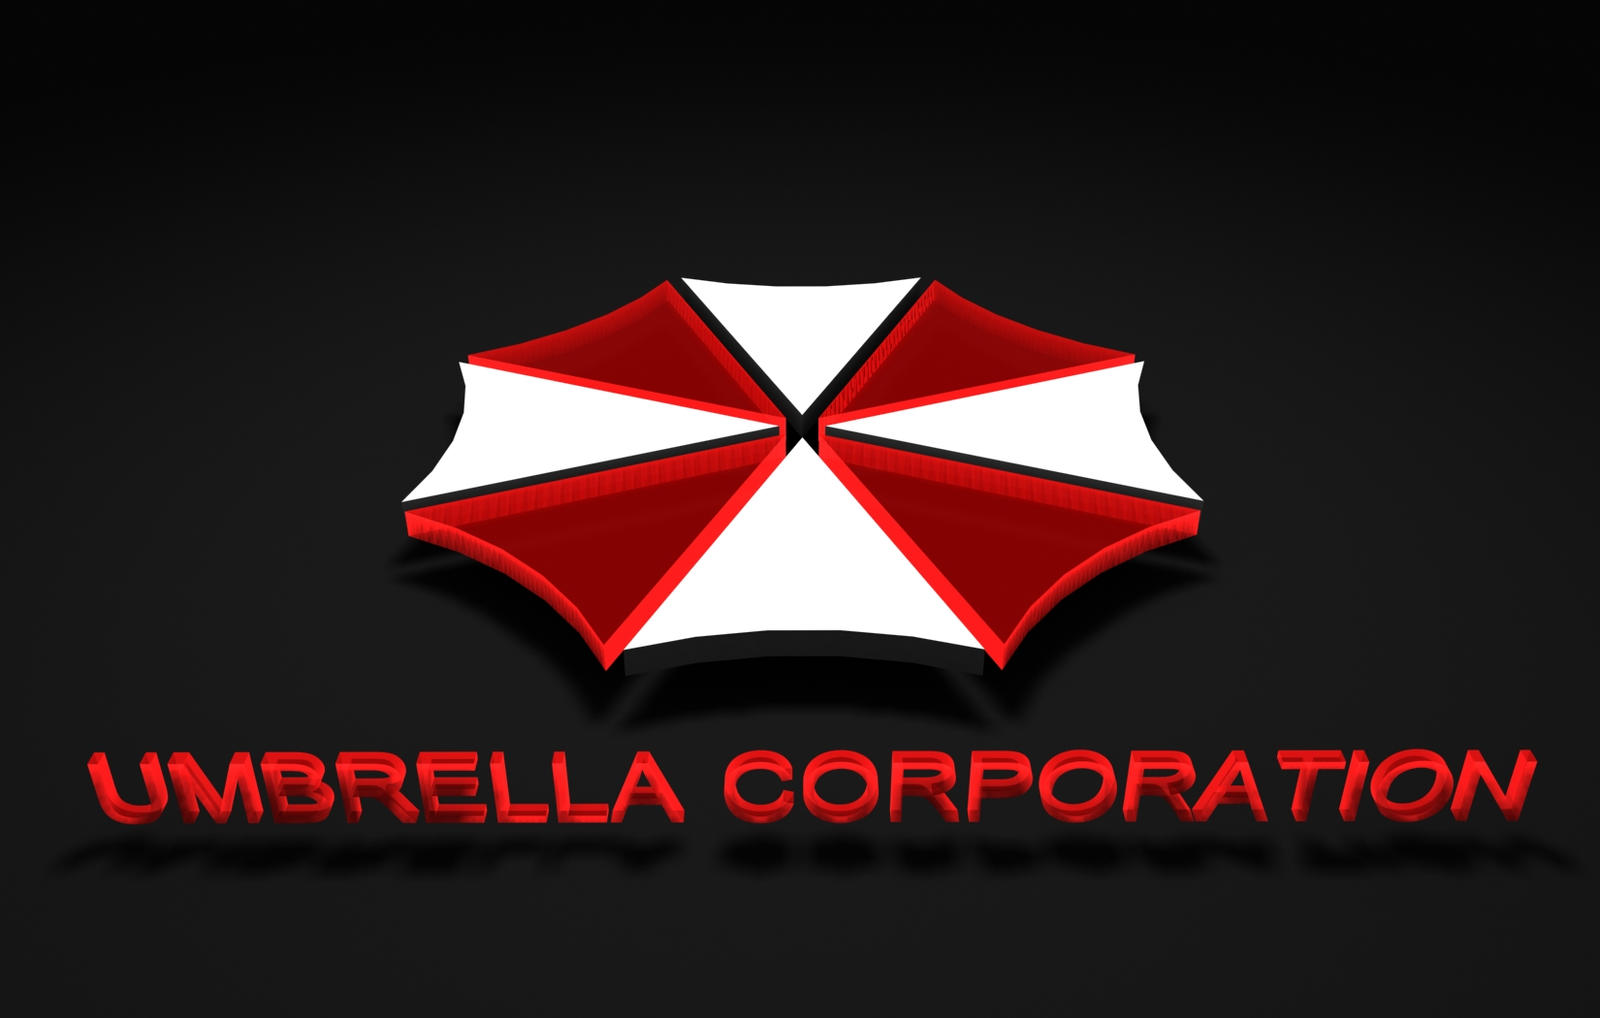 Does anyone know where I can get an Umbrella Corp. Windows Xp